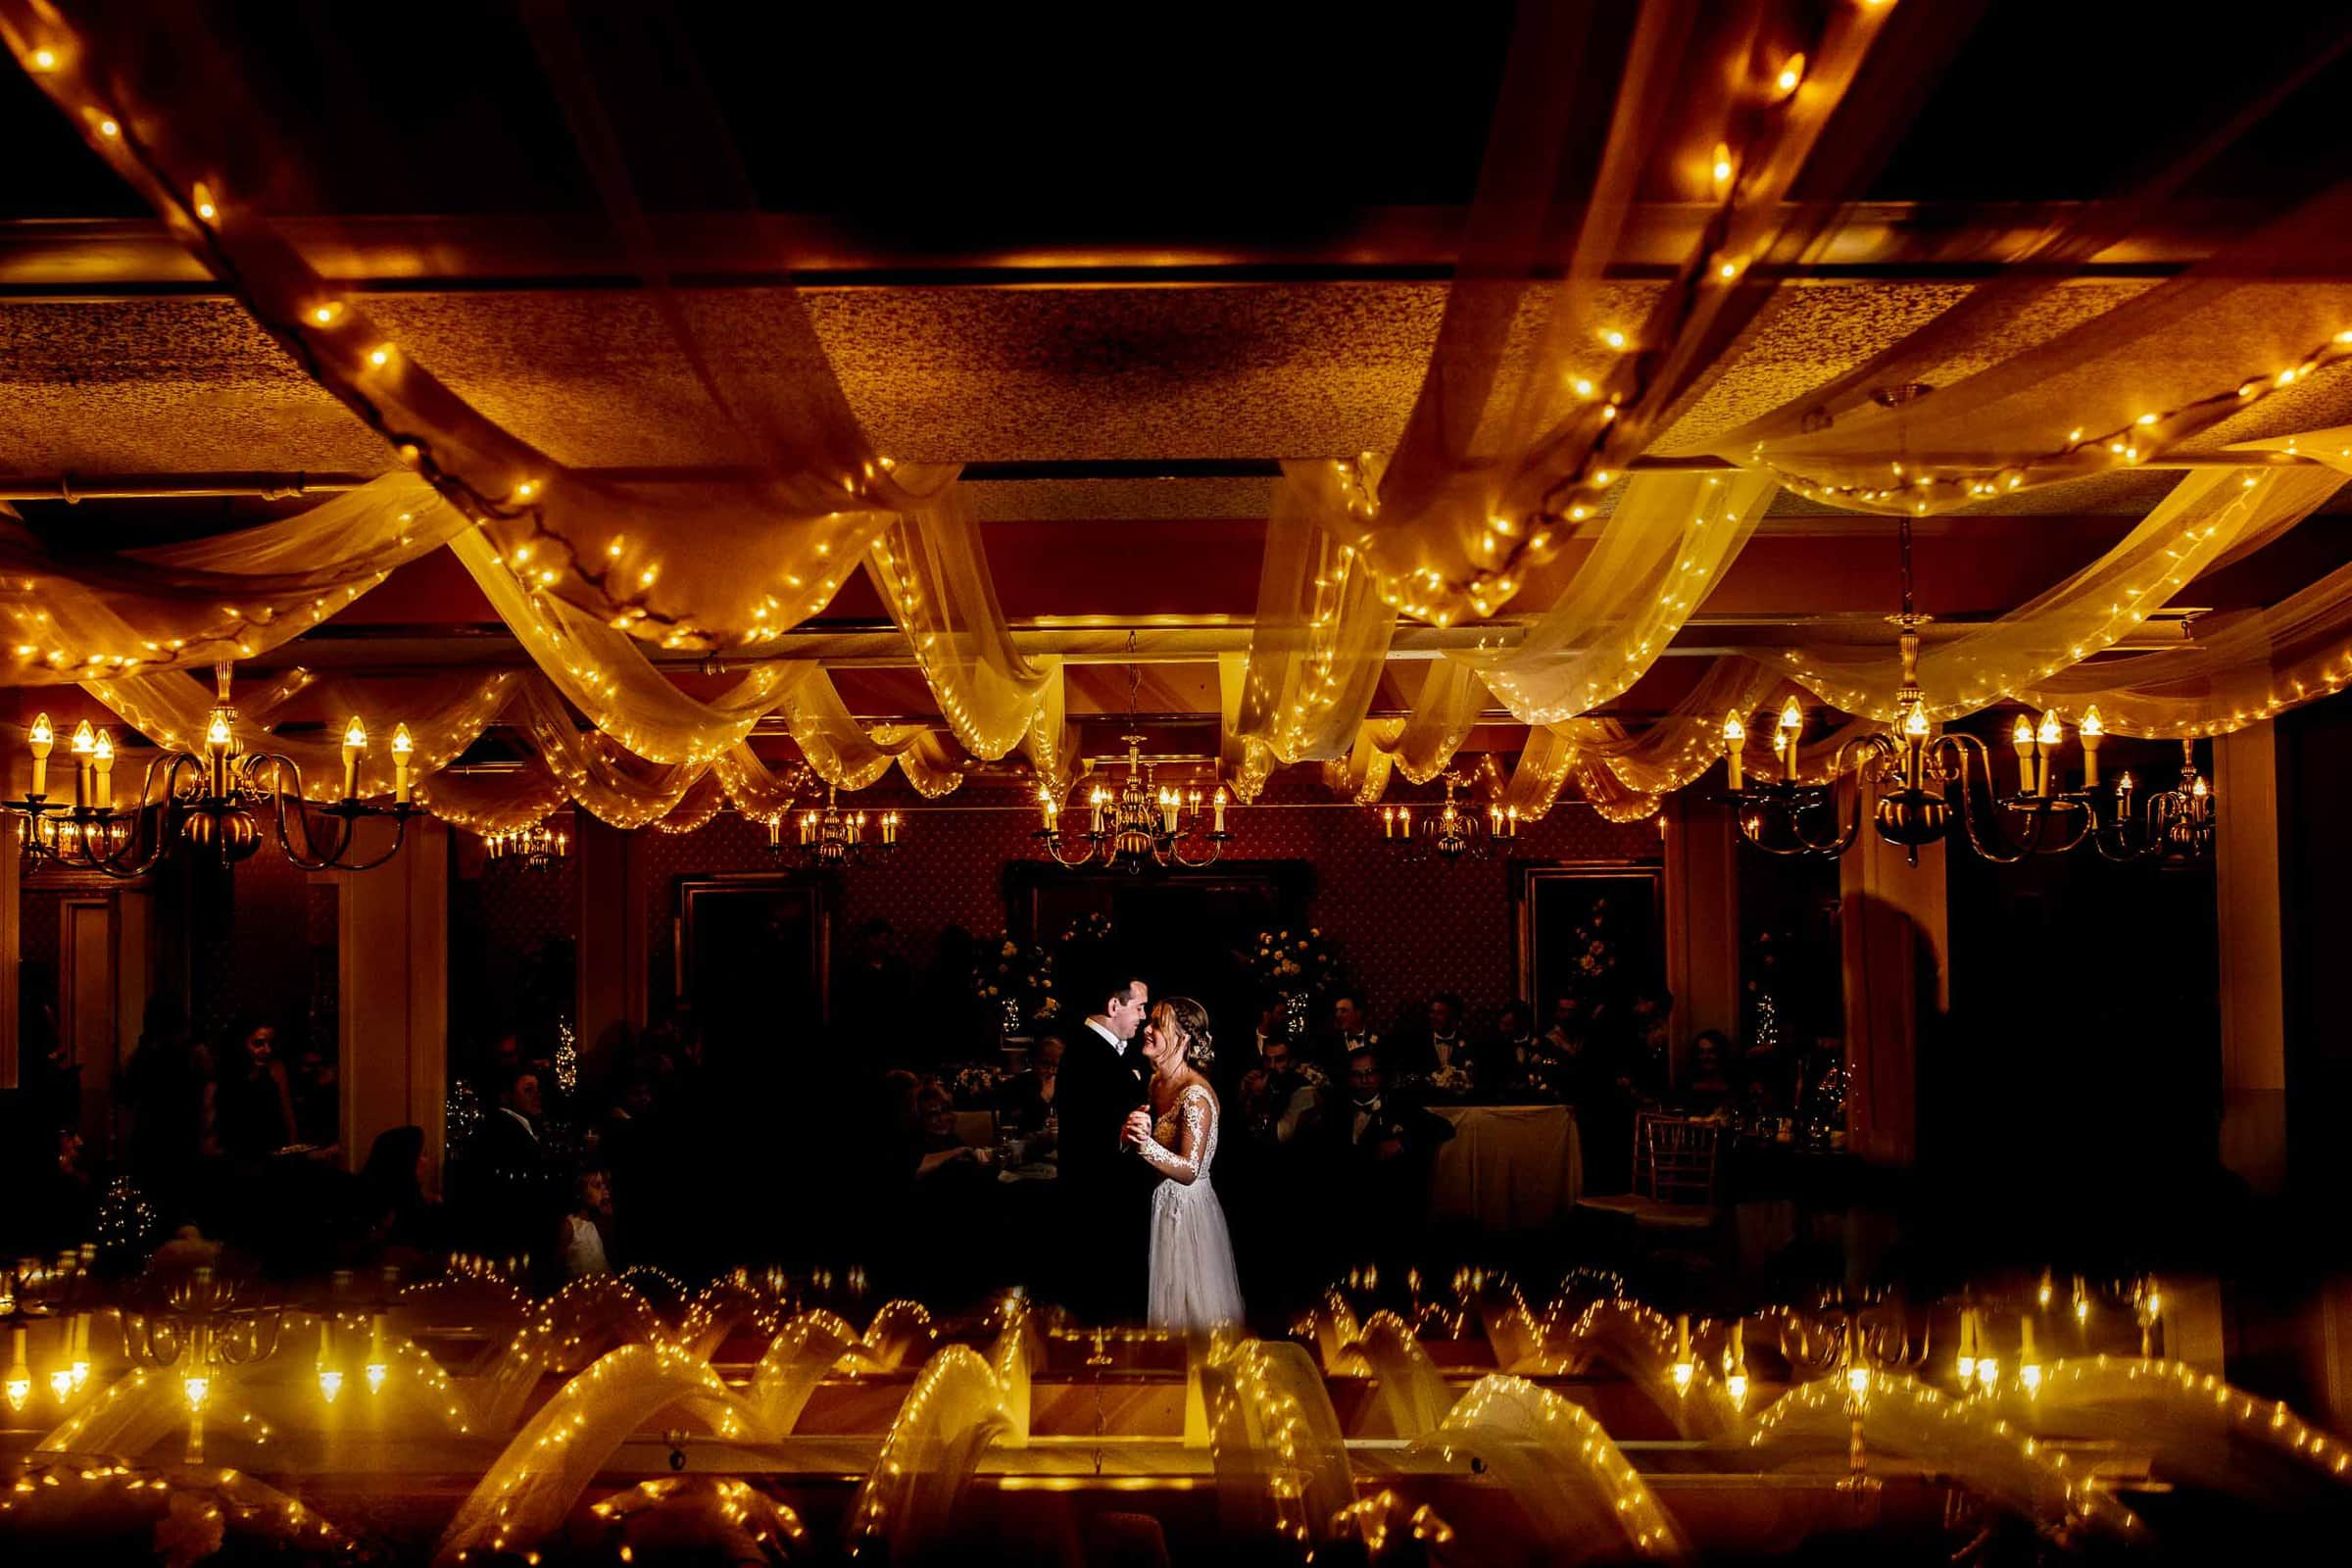 Bride and groom first dance during their Columbia Gorge Hotel wedding in the downstairs ballroom.